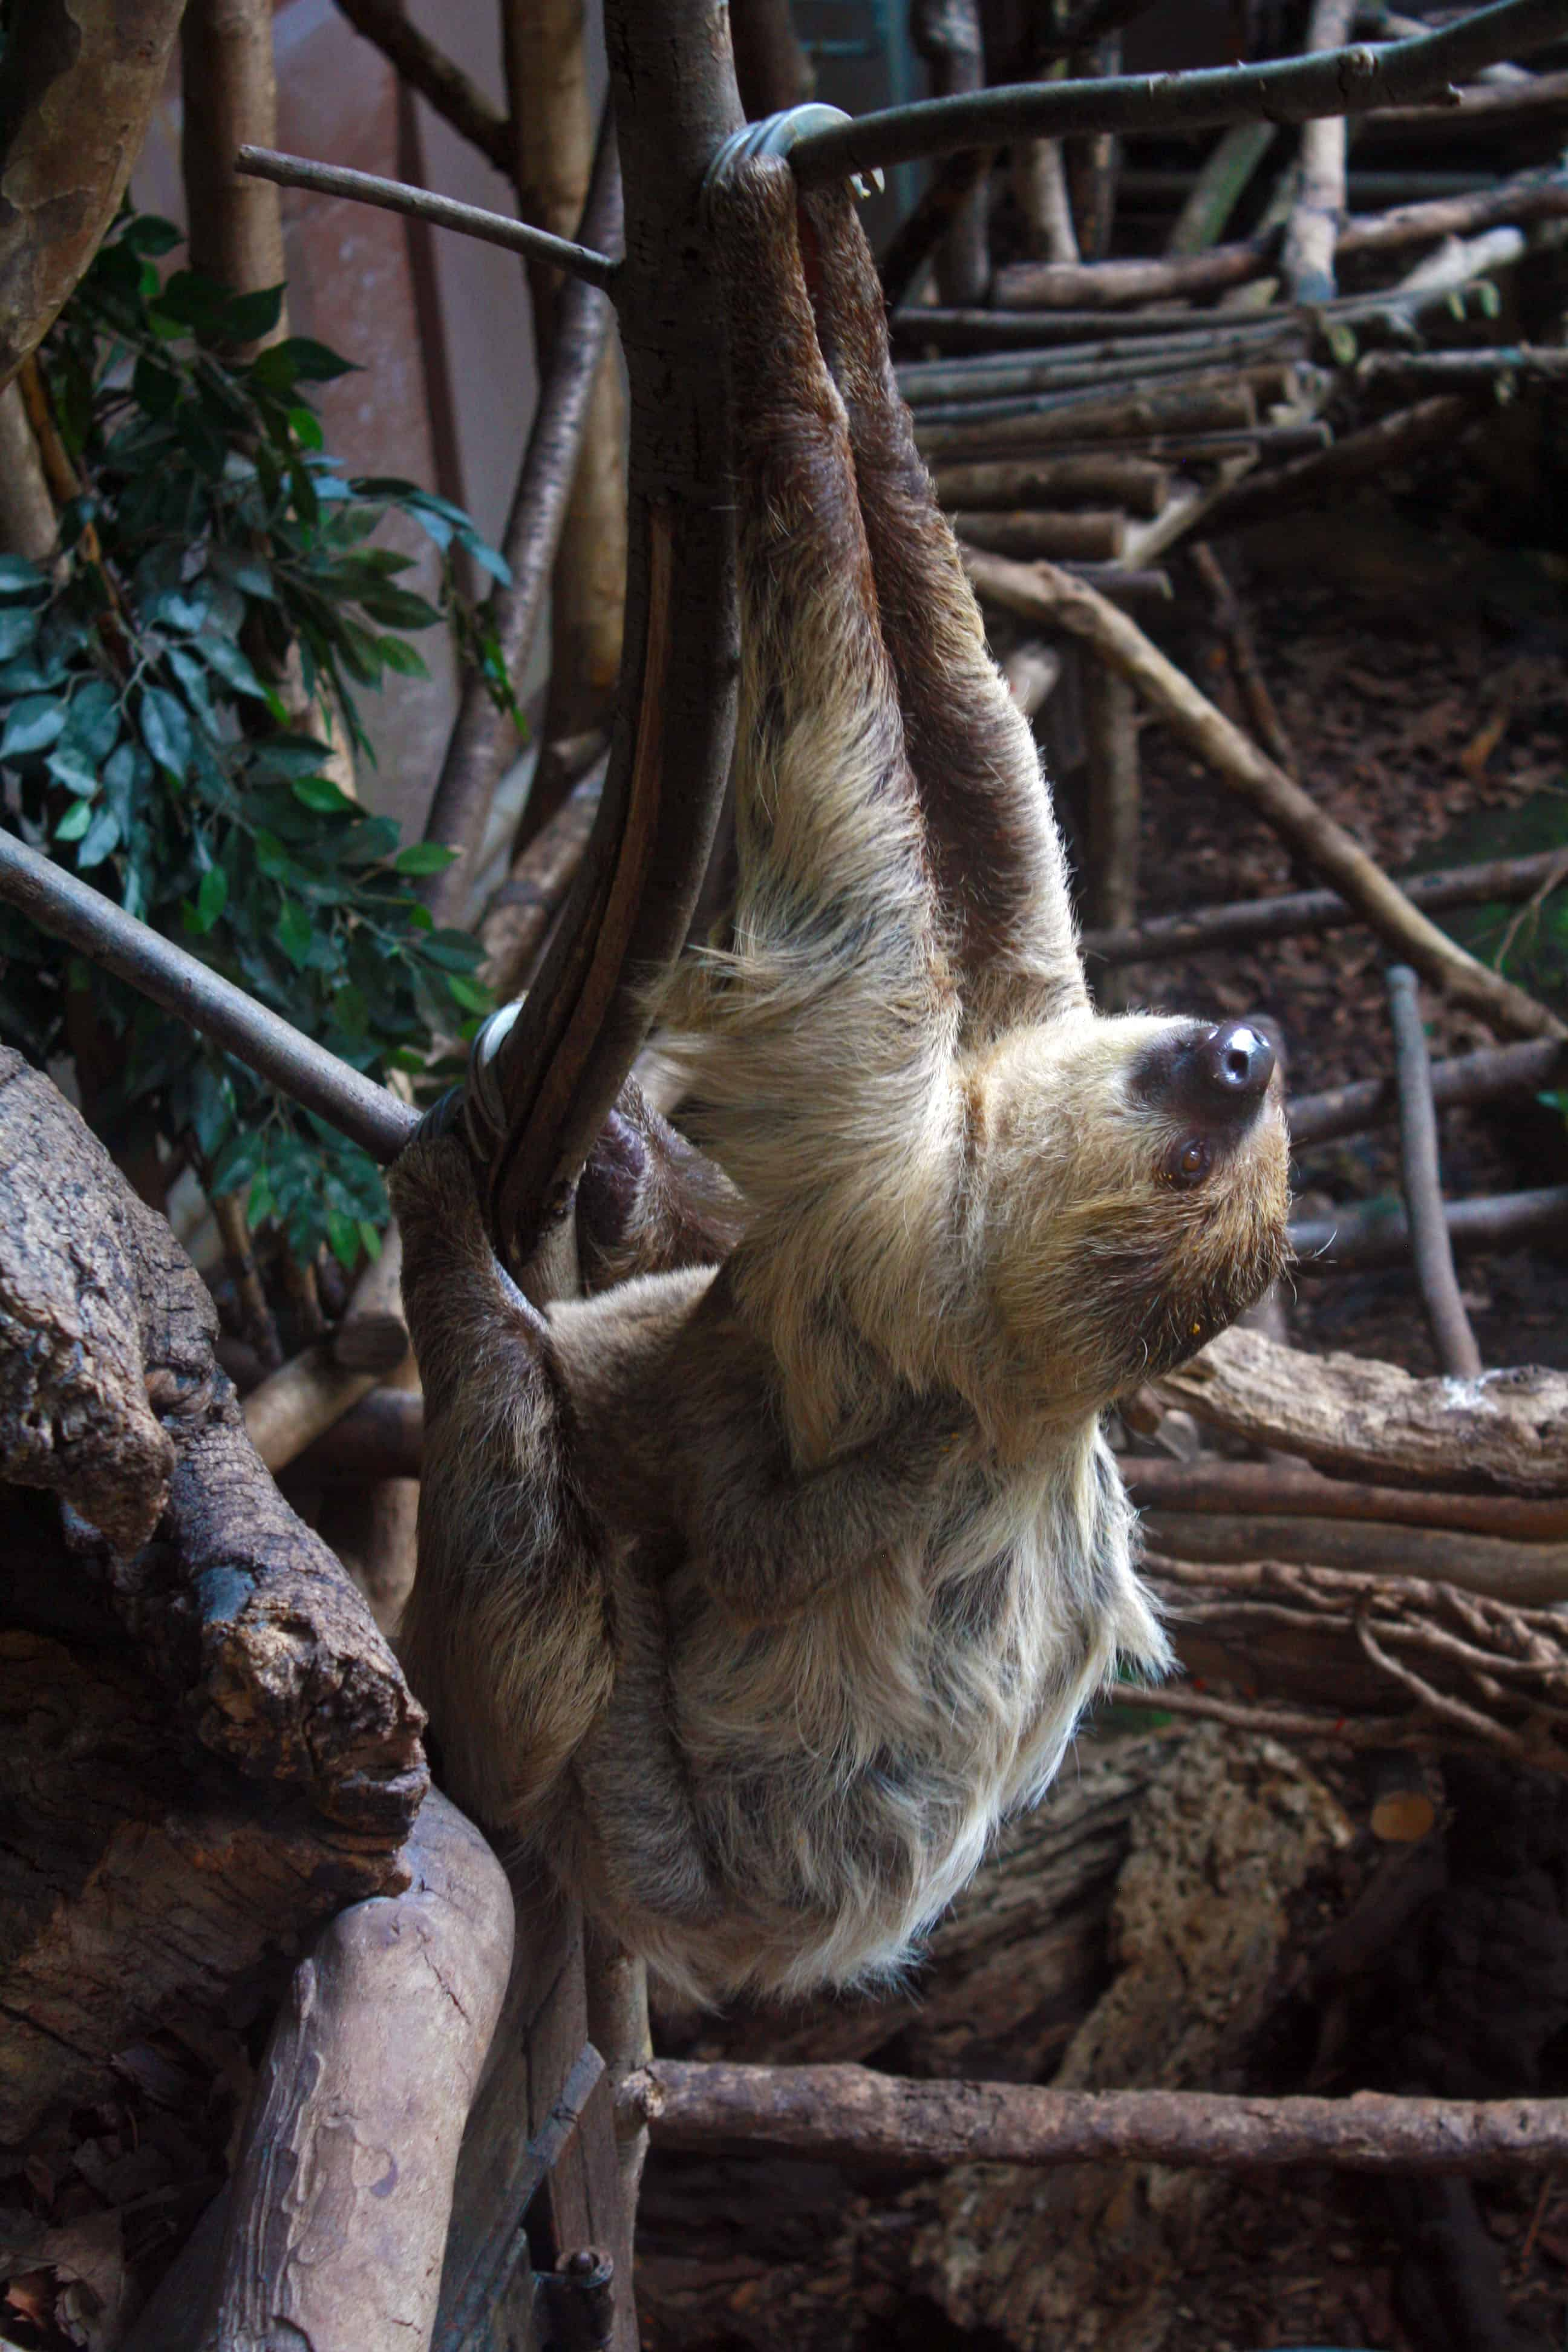 Mama sloth with a baby sloth at London Zoo